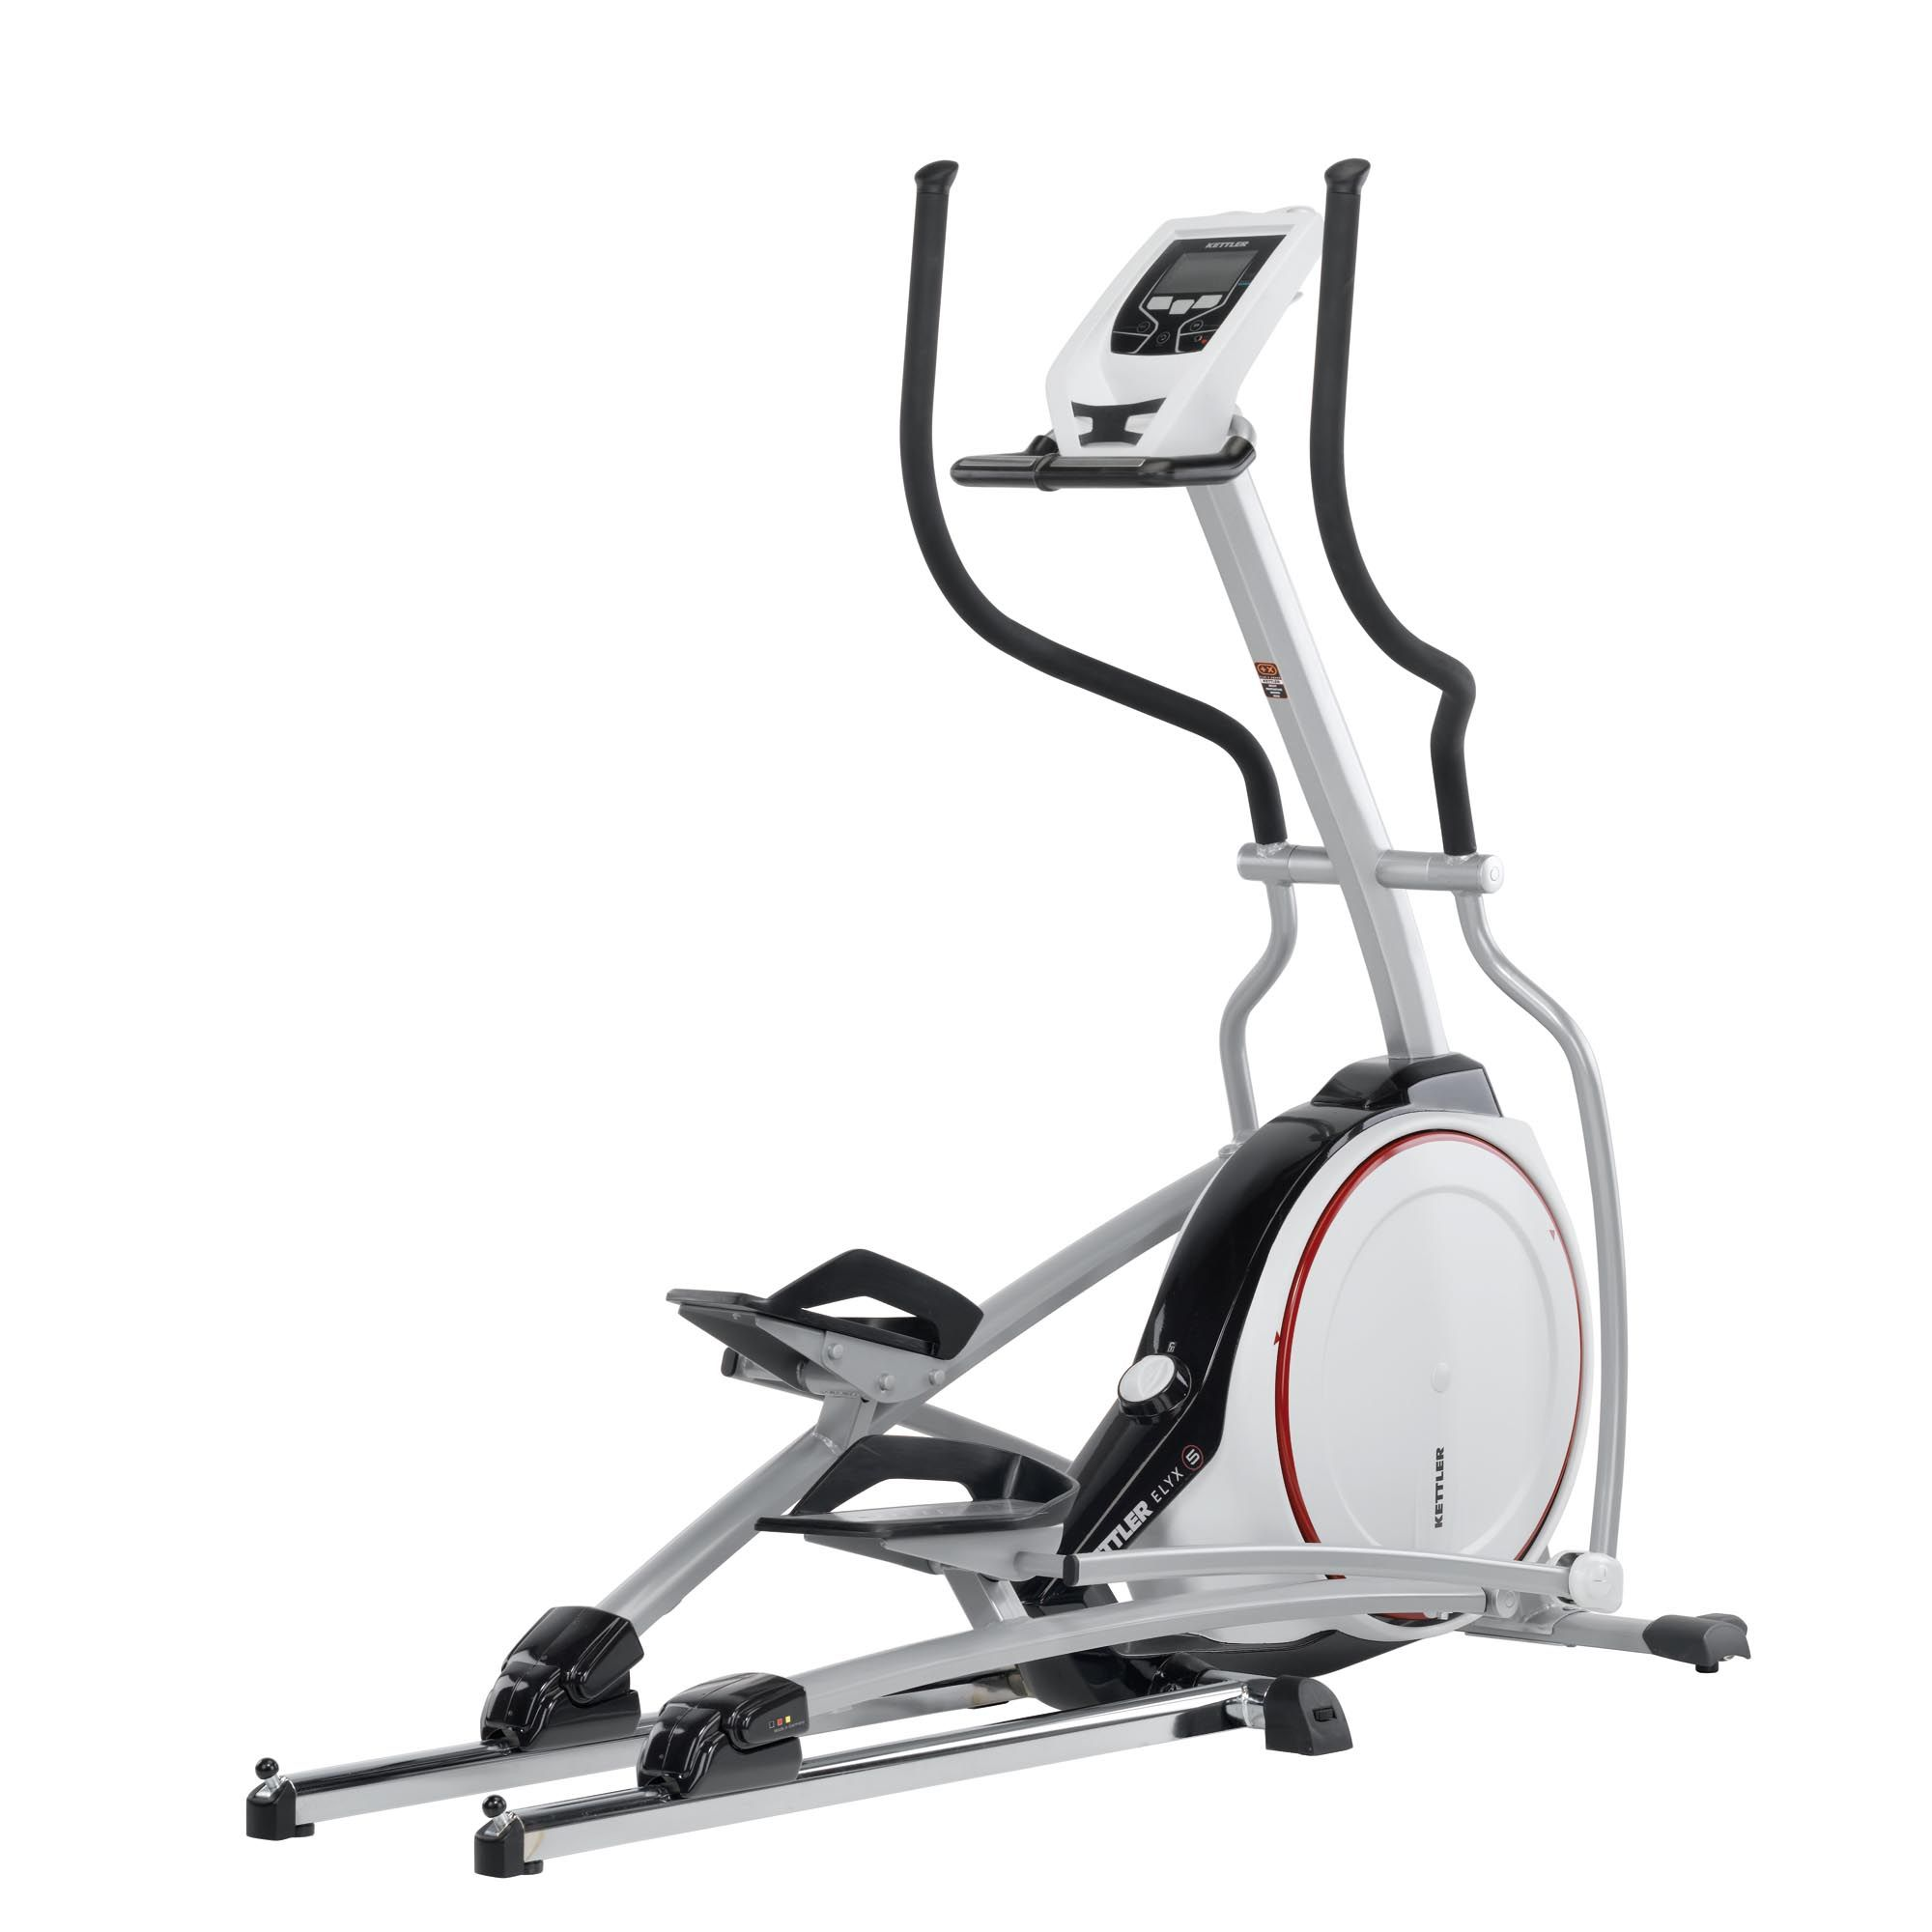 Kettler Fitness Kettler Elyx 5 Elliptical Cross Trainer Sweatband